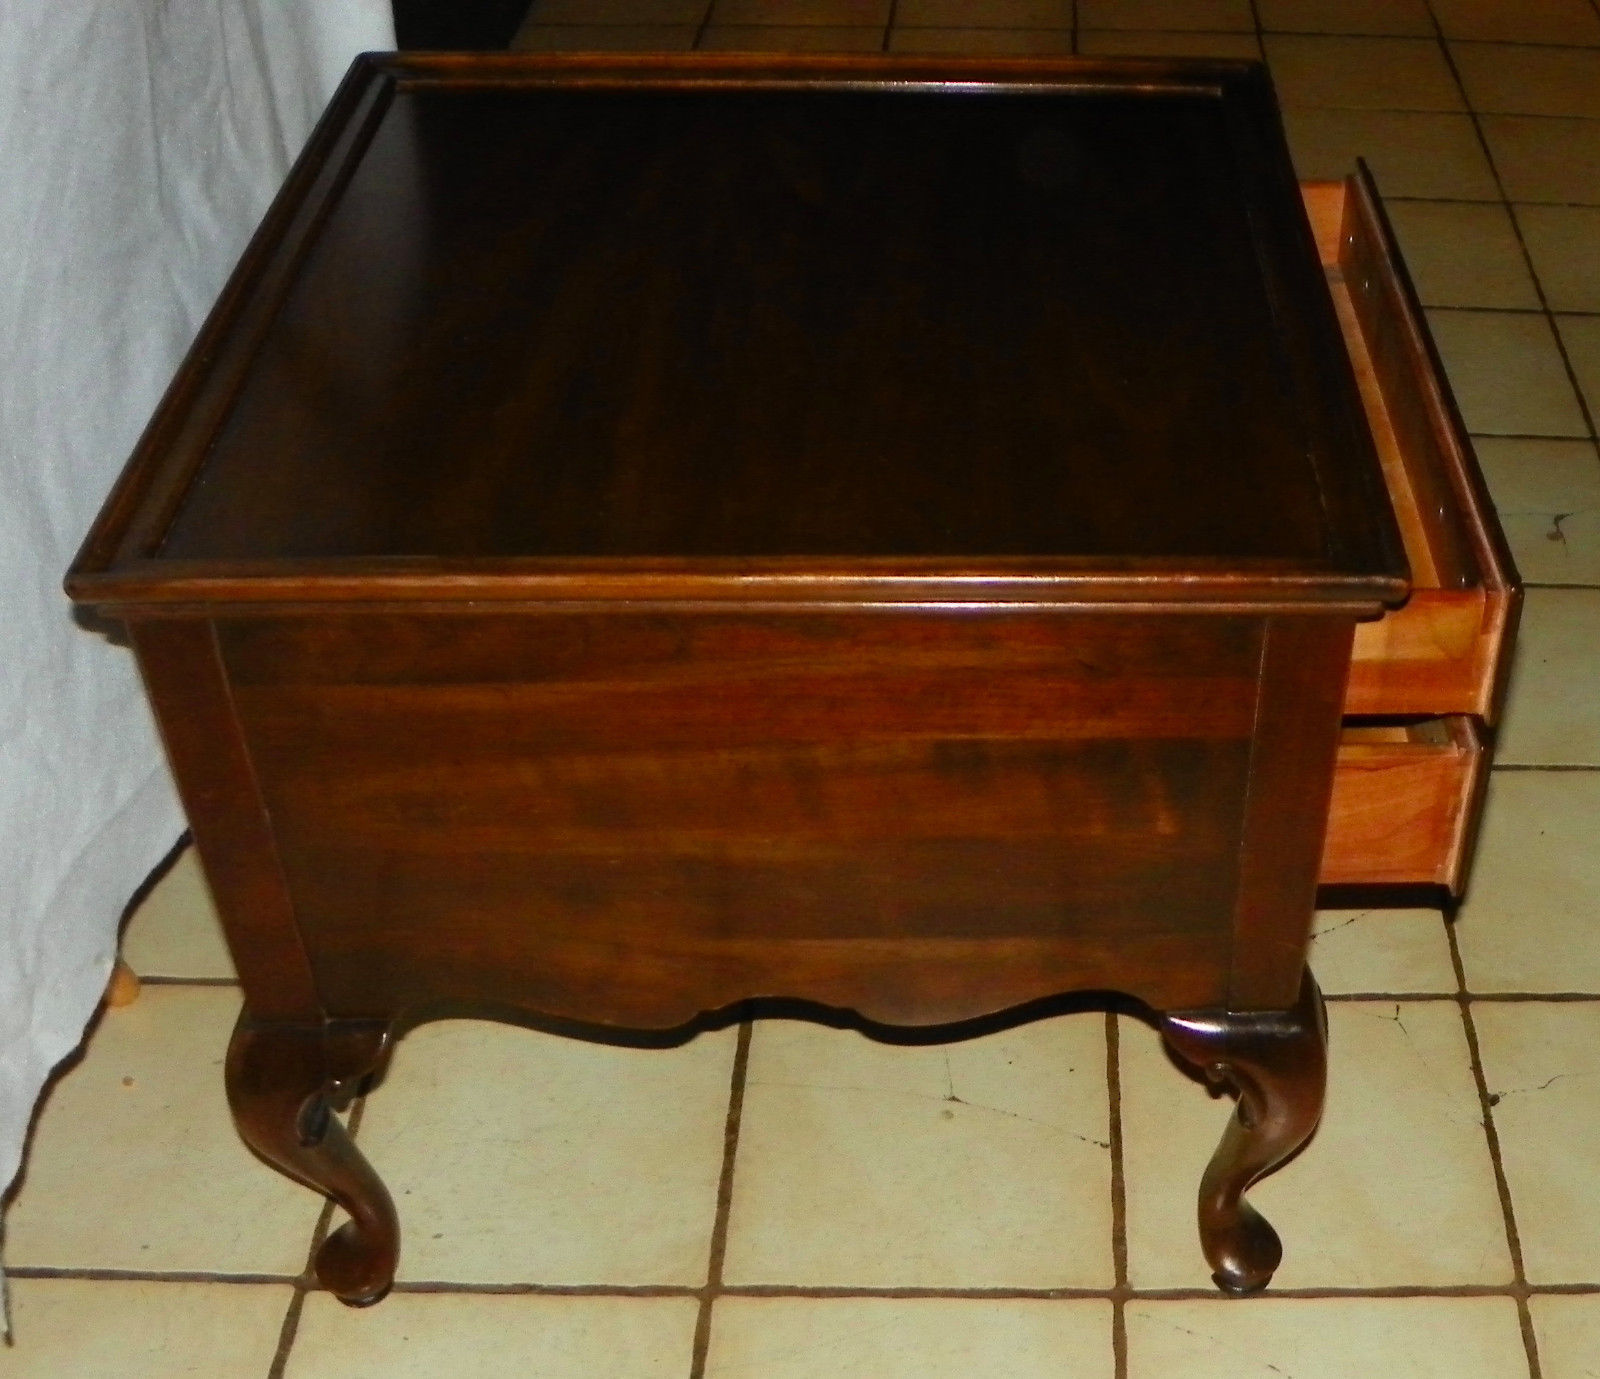 Ethan Allen Coffee Table With Drawers: Cherry Ethan Allen End Table / Side Table With Drawer